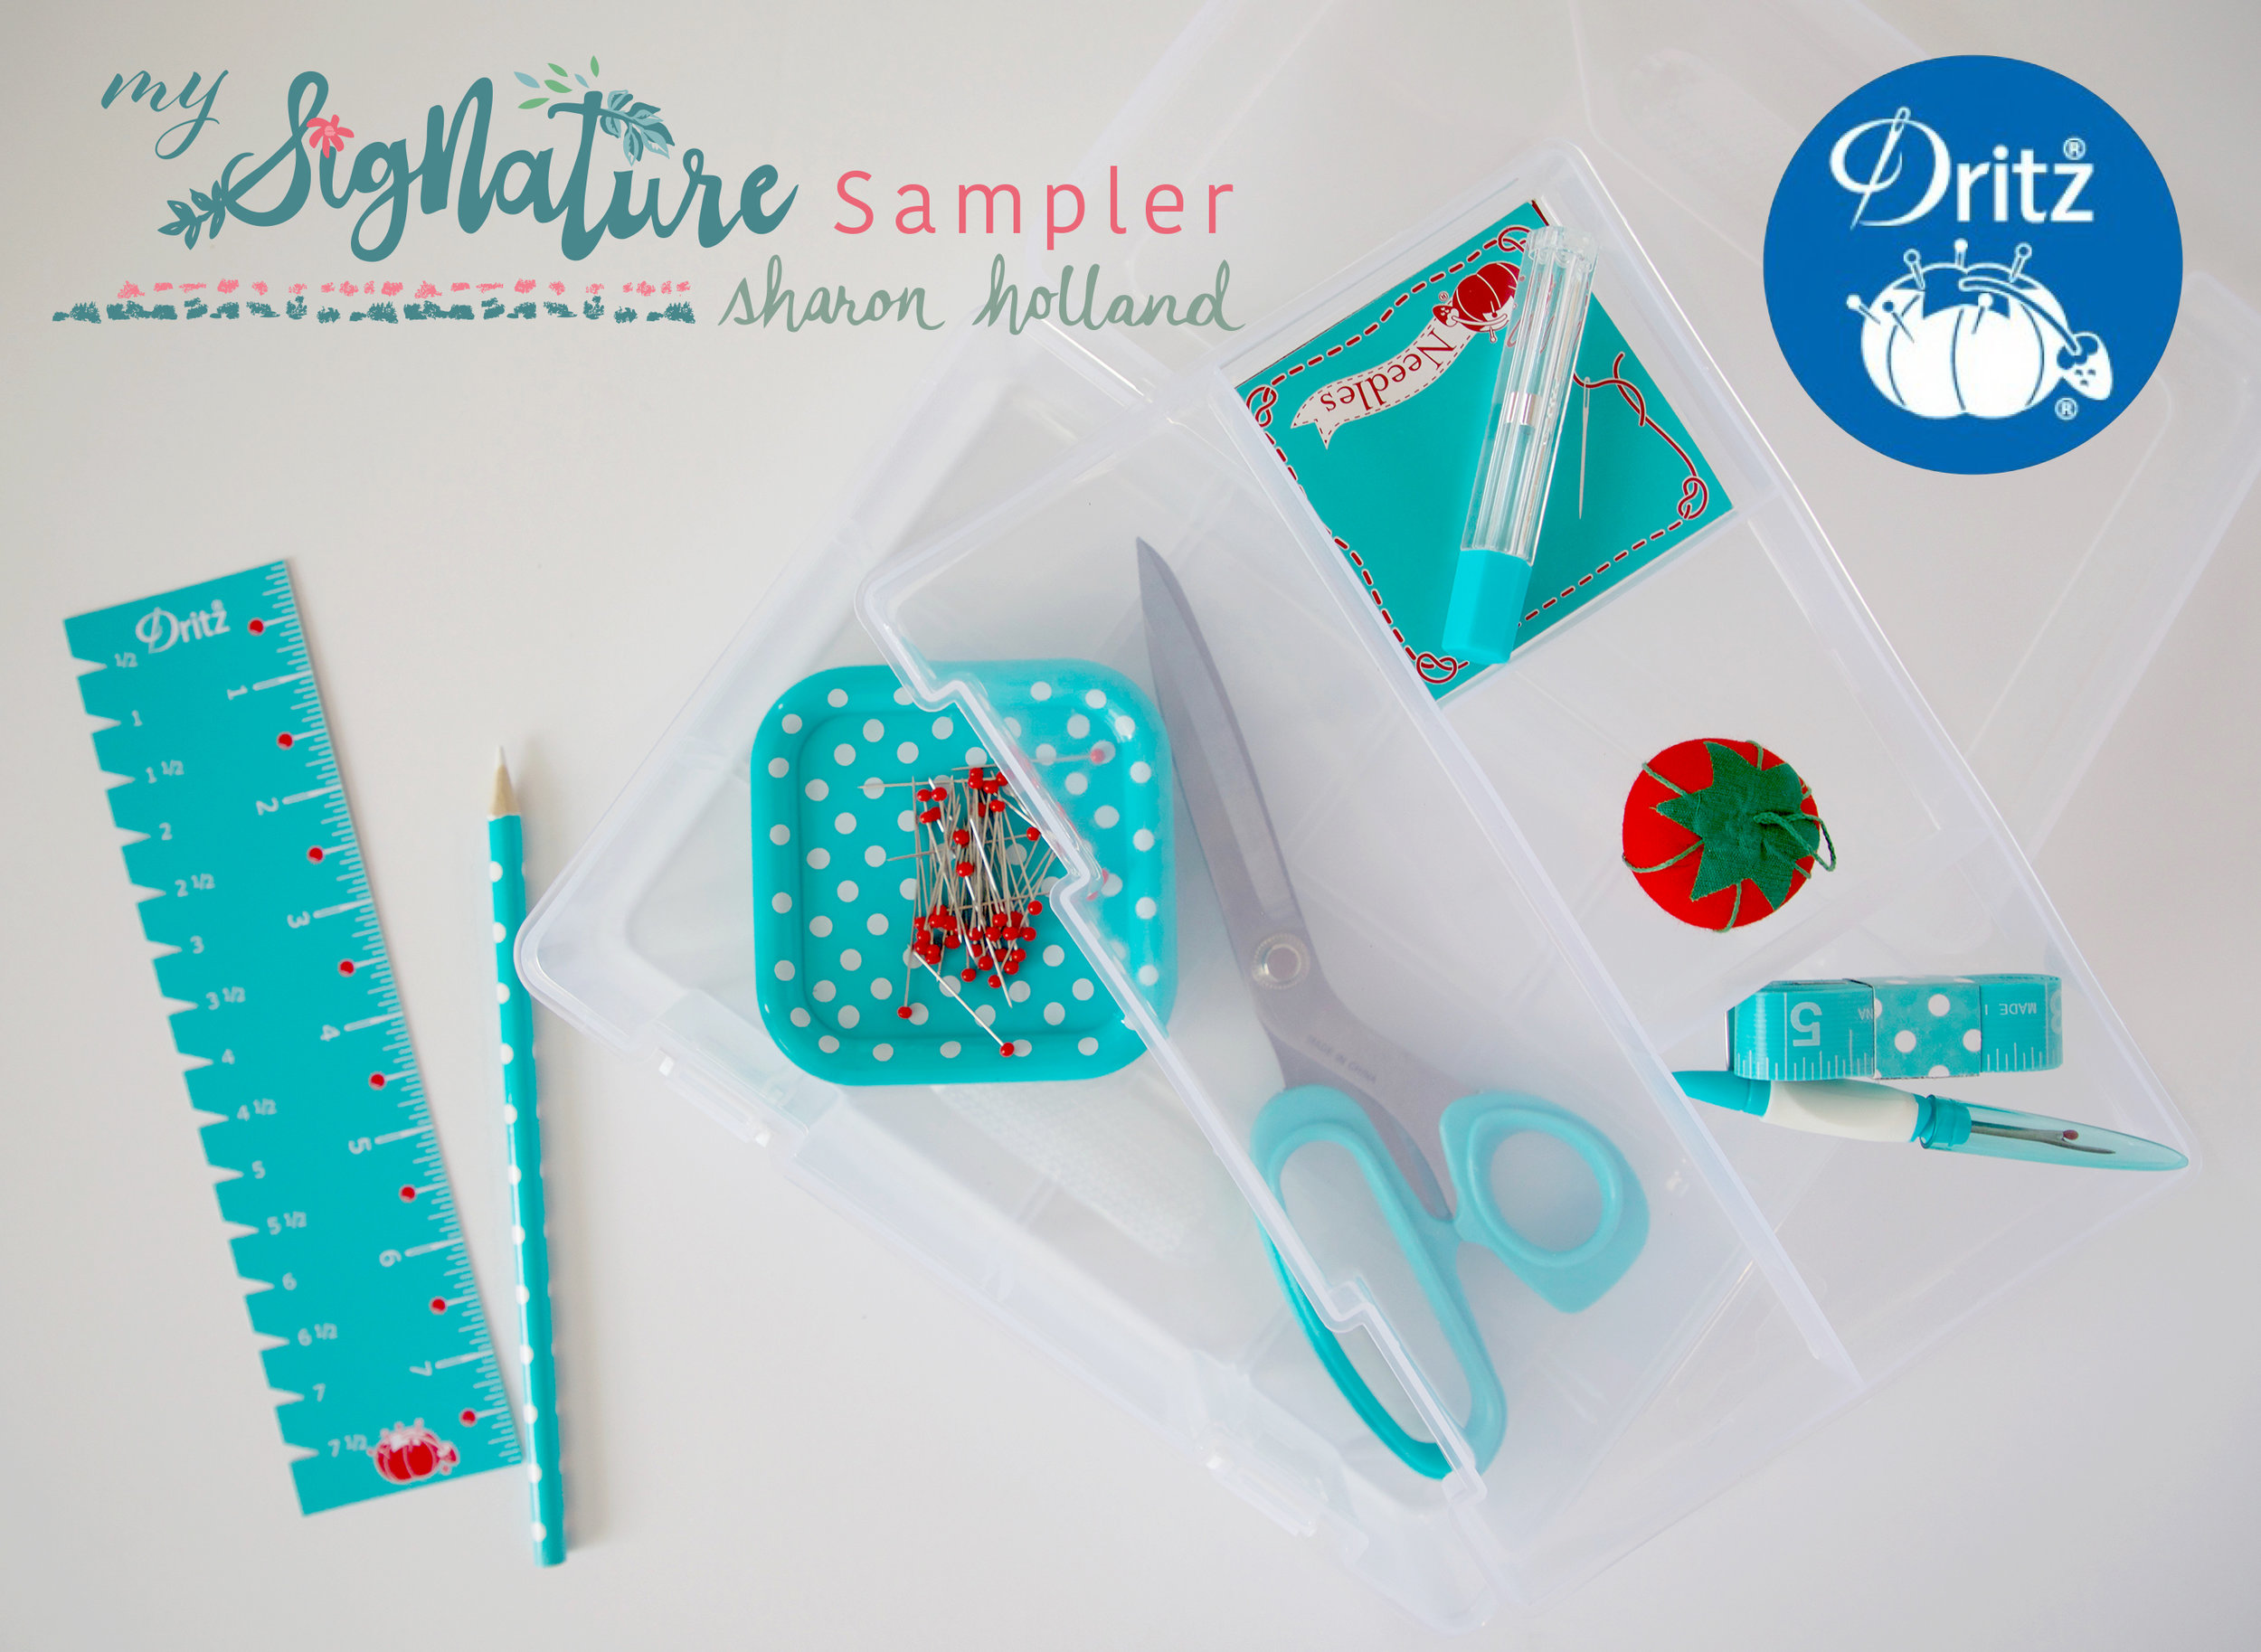 Dritz Sewing Box Contents 2banner.jpg